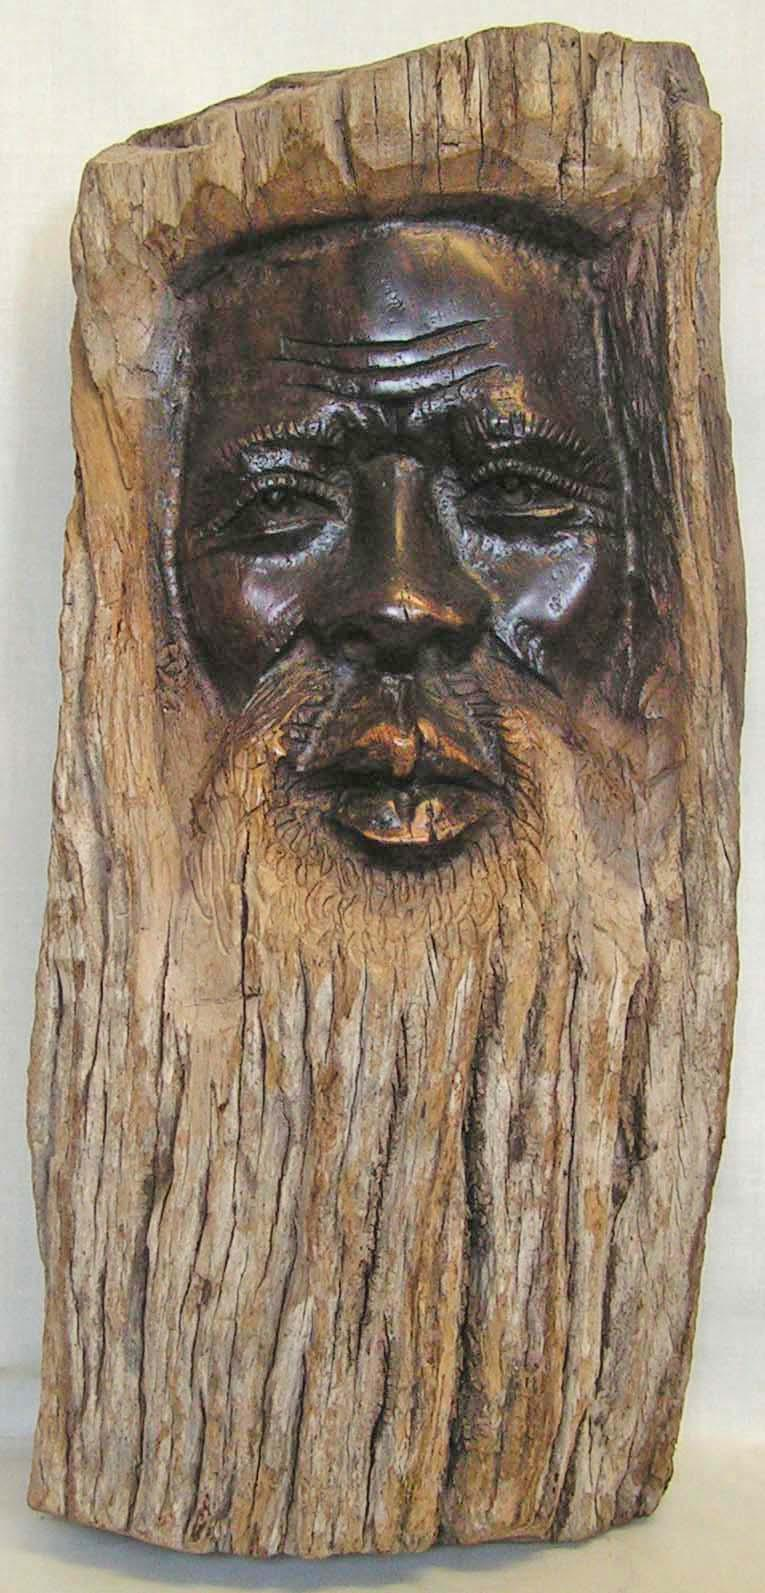 Commercial exploration diary wood carving